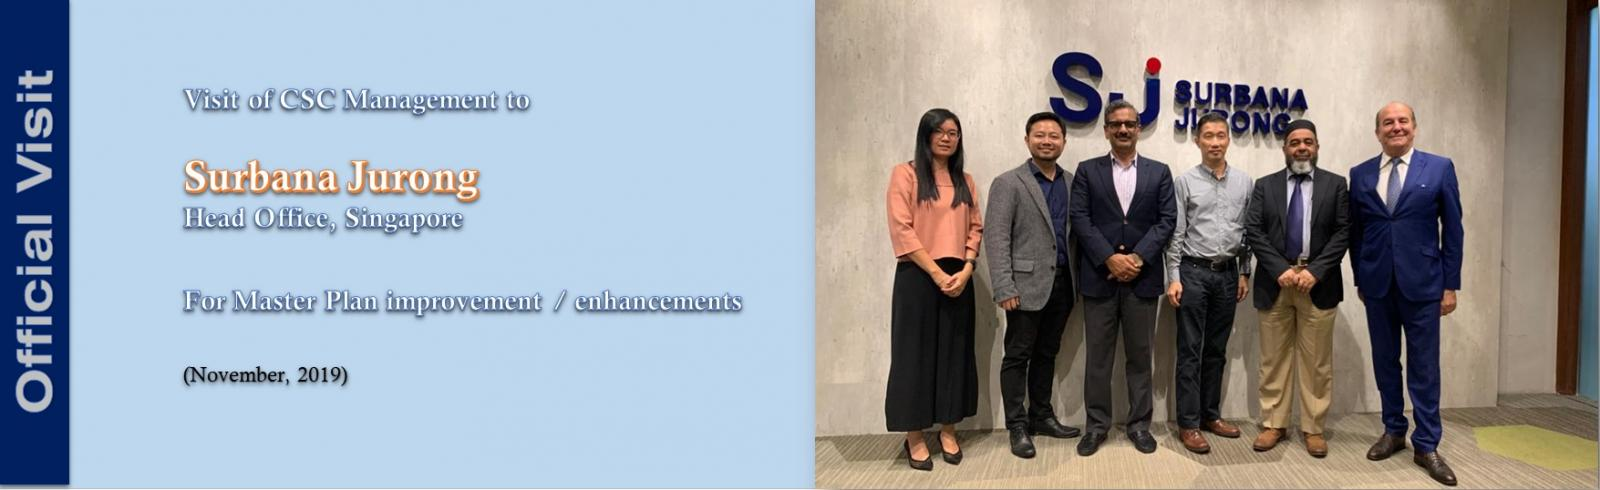 Successful visit of CSC Management to Surbana Jurong Head Office, Singapore